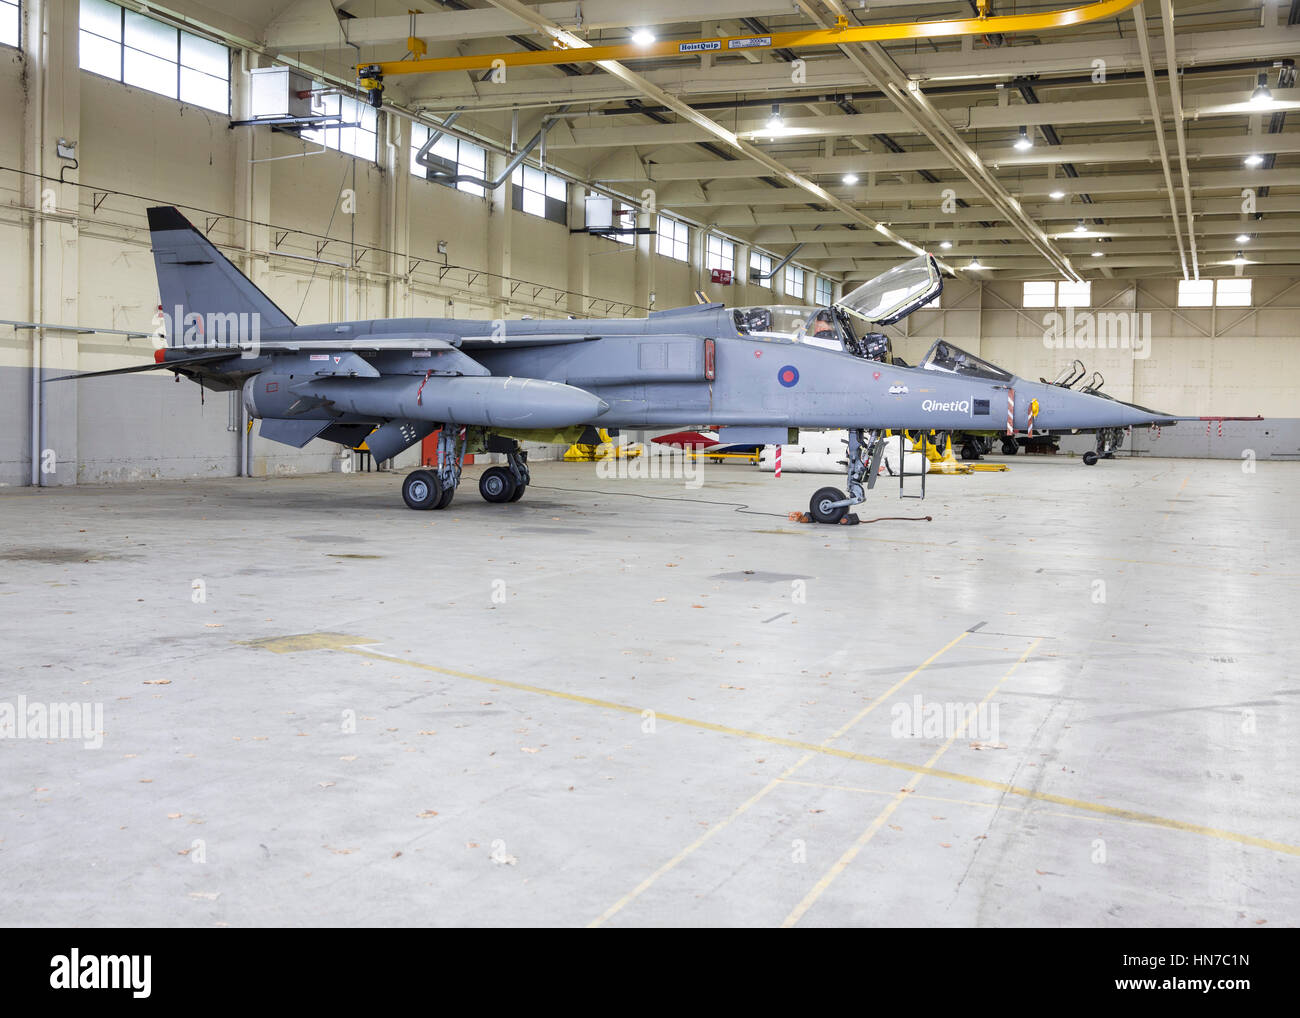 SEPE Jaguar GR1 RAF jet fighter aircraft in the livery of QinetiQ - Stock Image